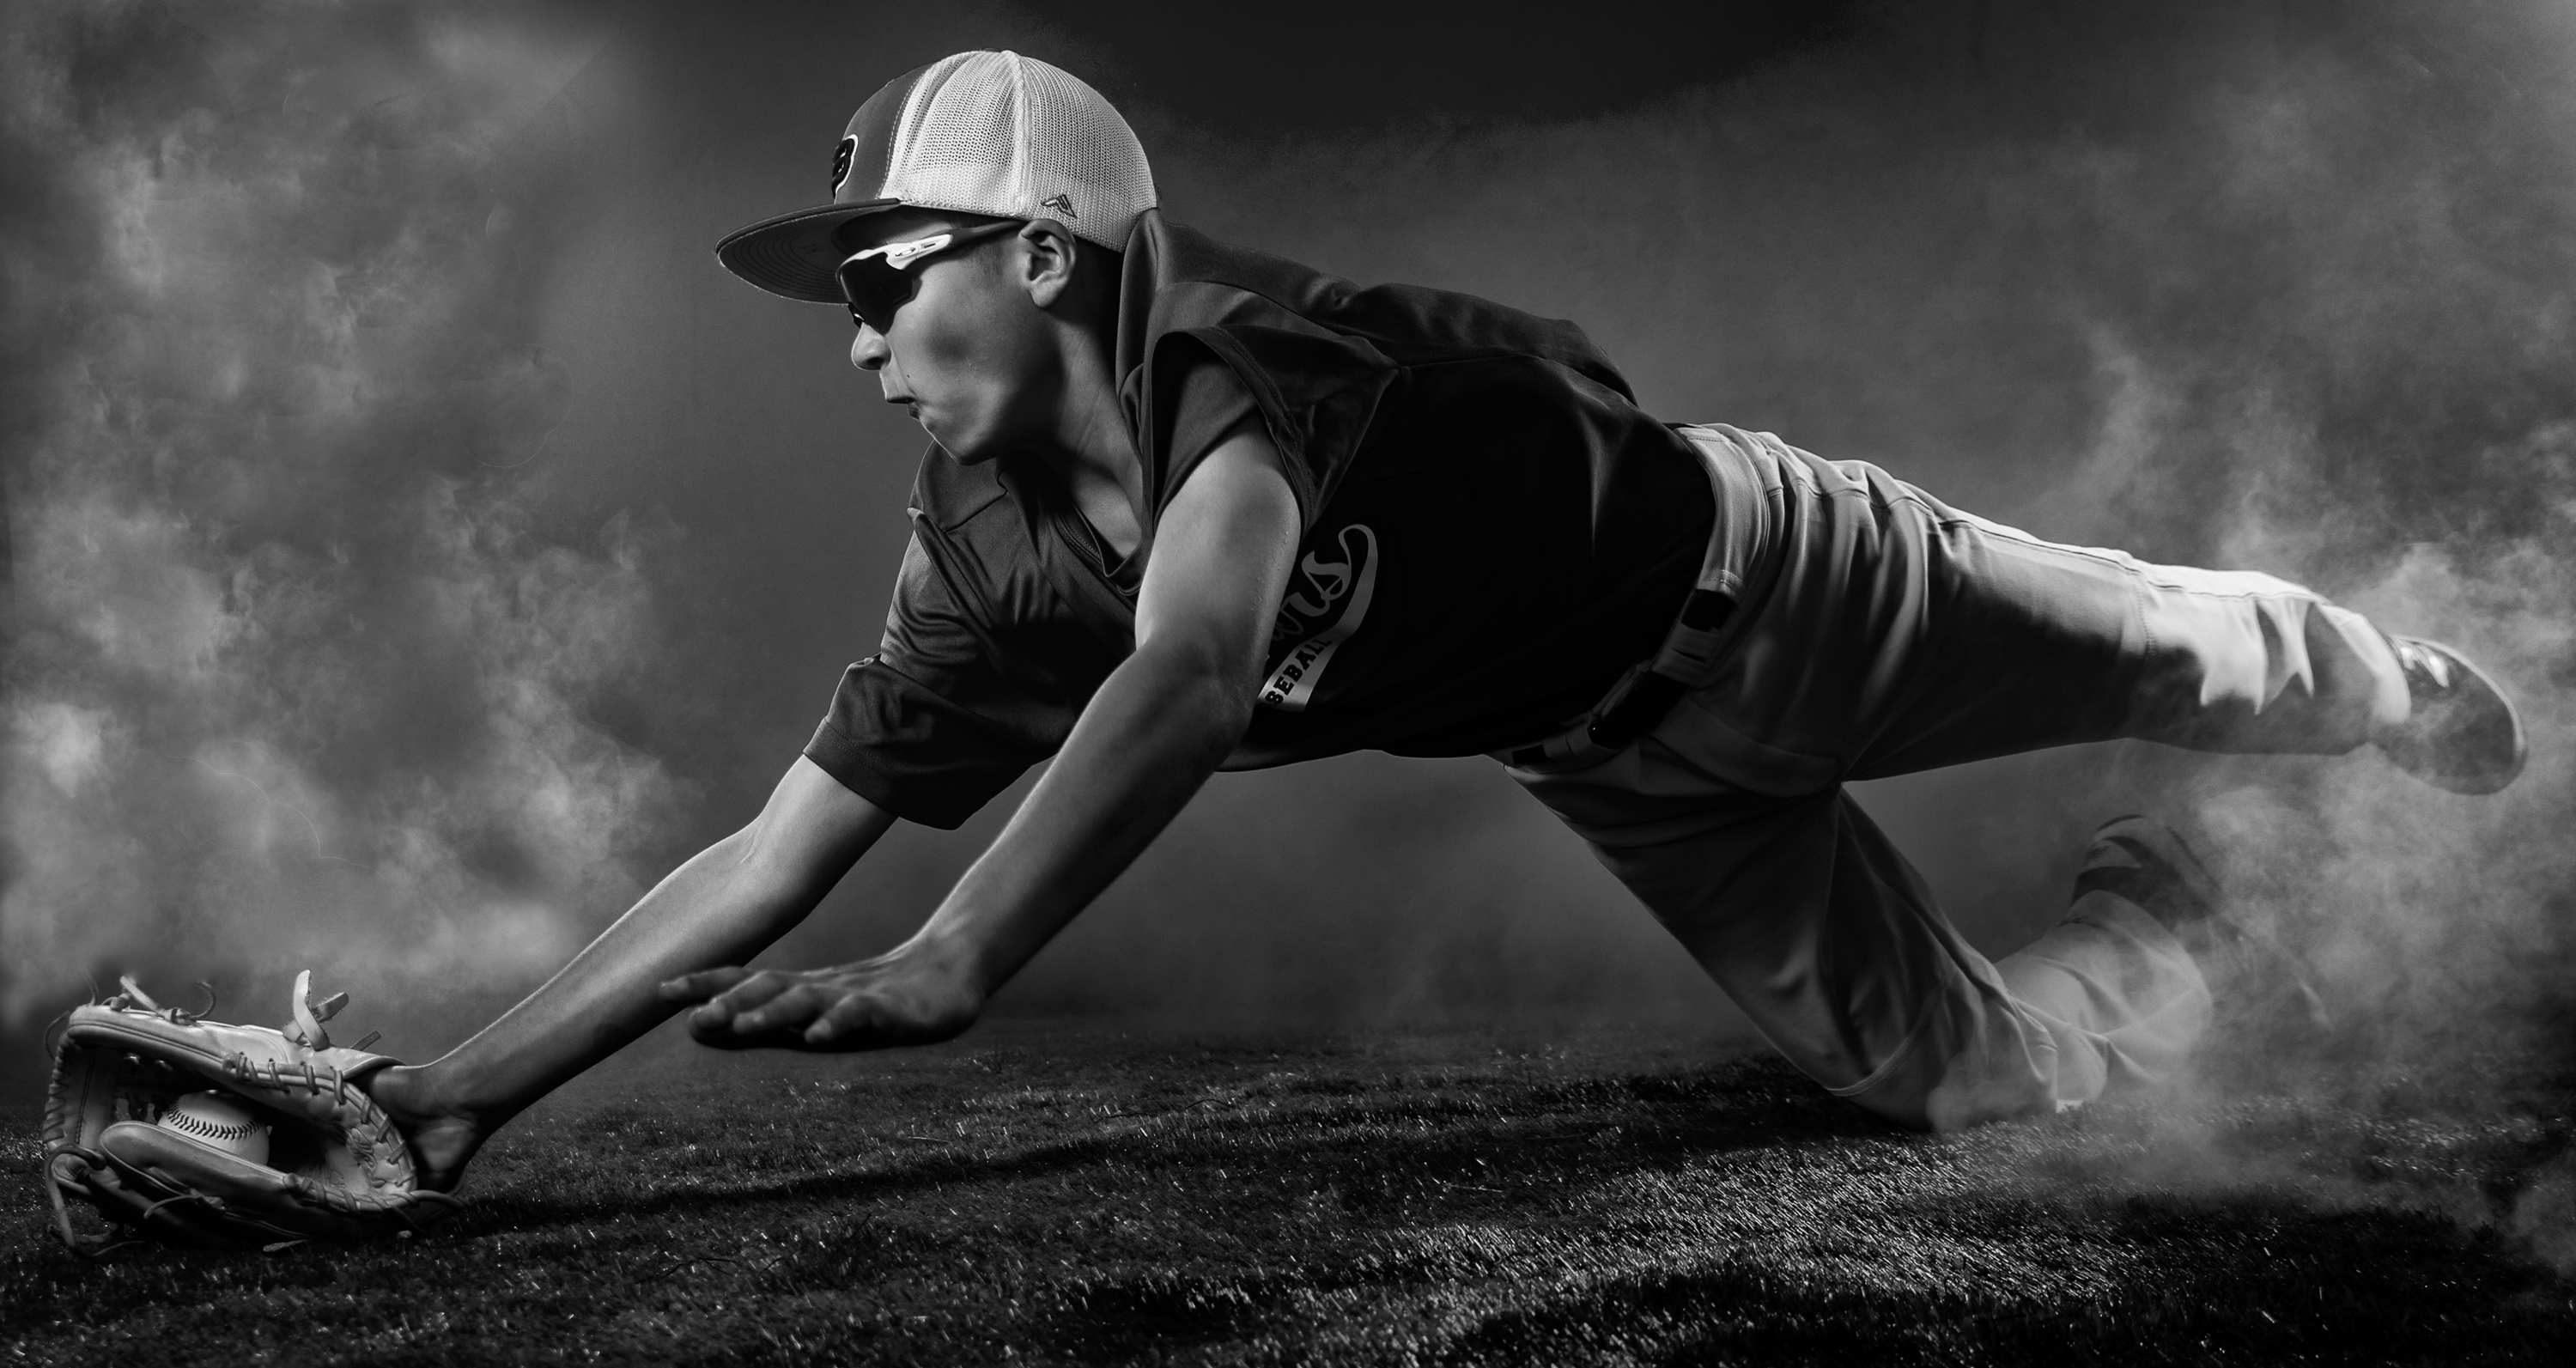 baseball_player_diving_catch_advertising_photography_sfbayarea_8813